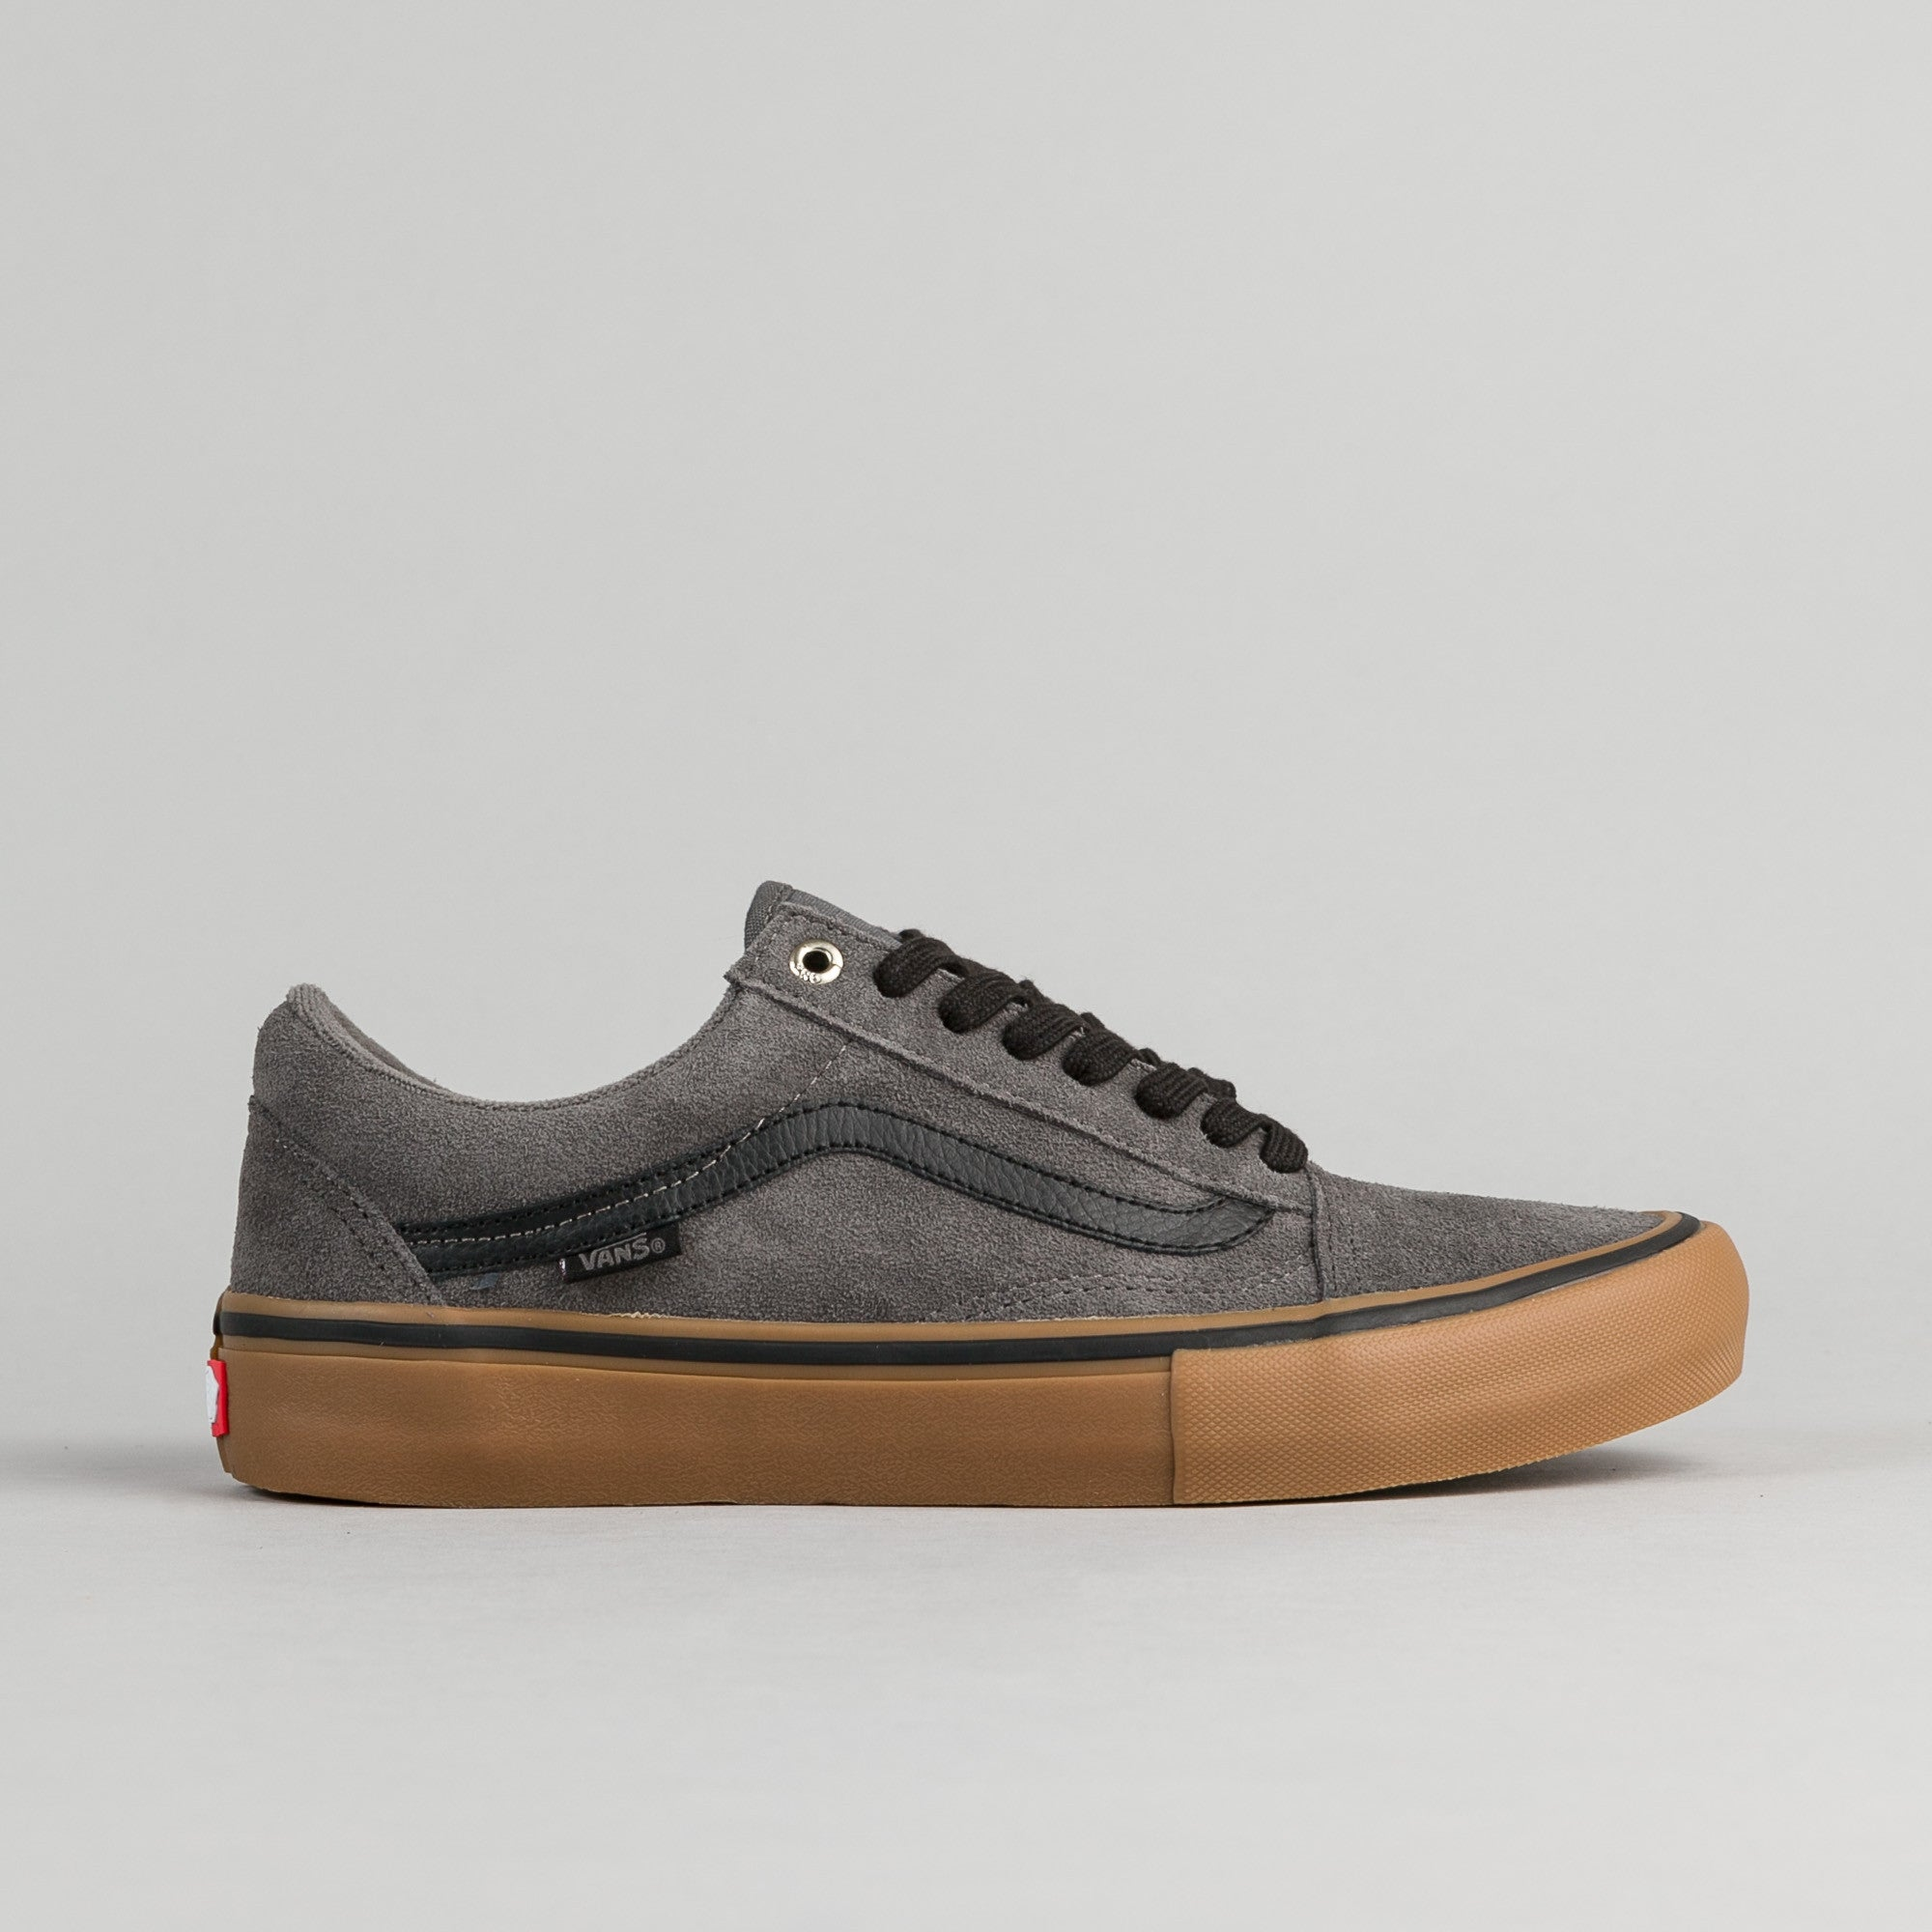 86556aa0e0c8b0 Vans Old Skool Pro Shoes - Grey   Black   Gum